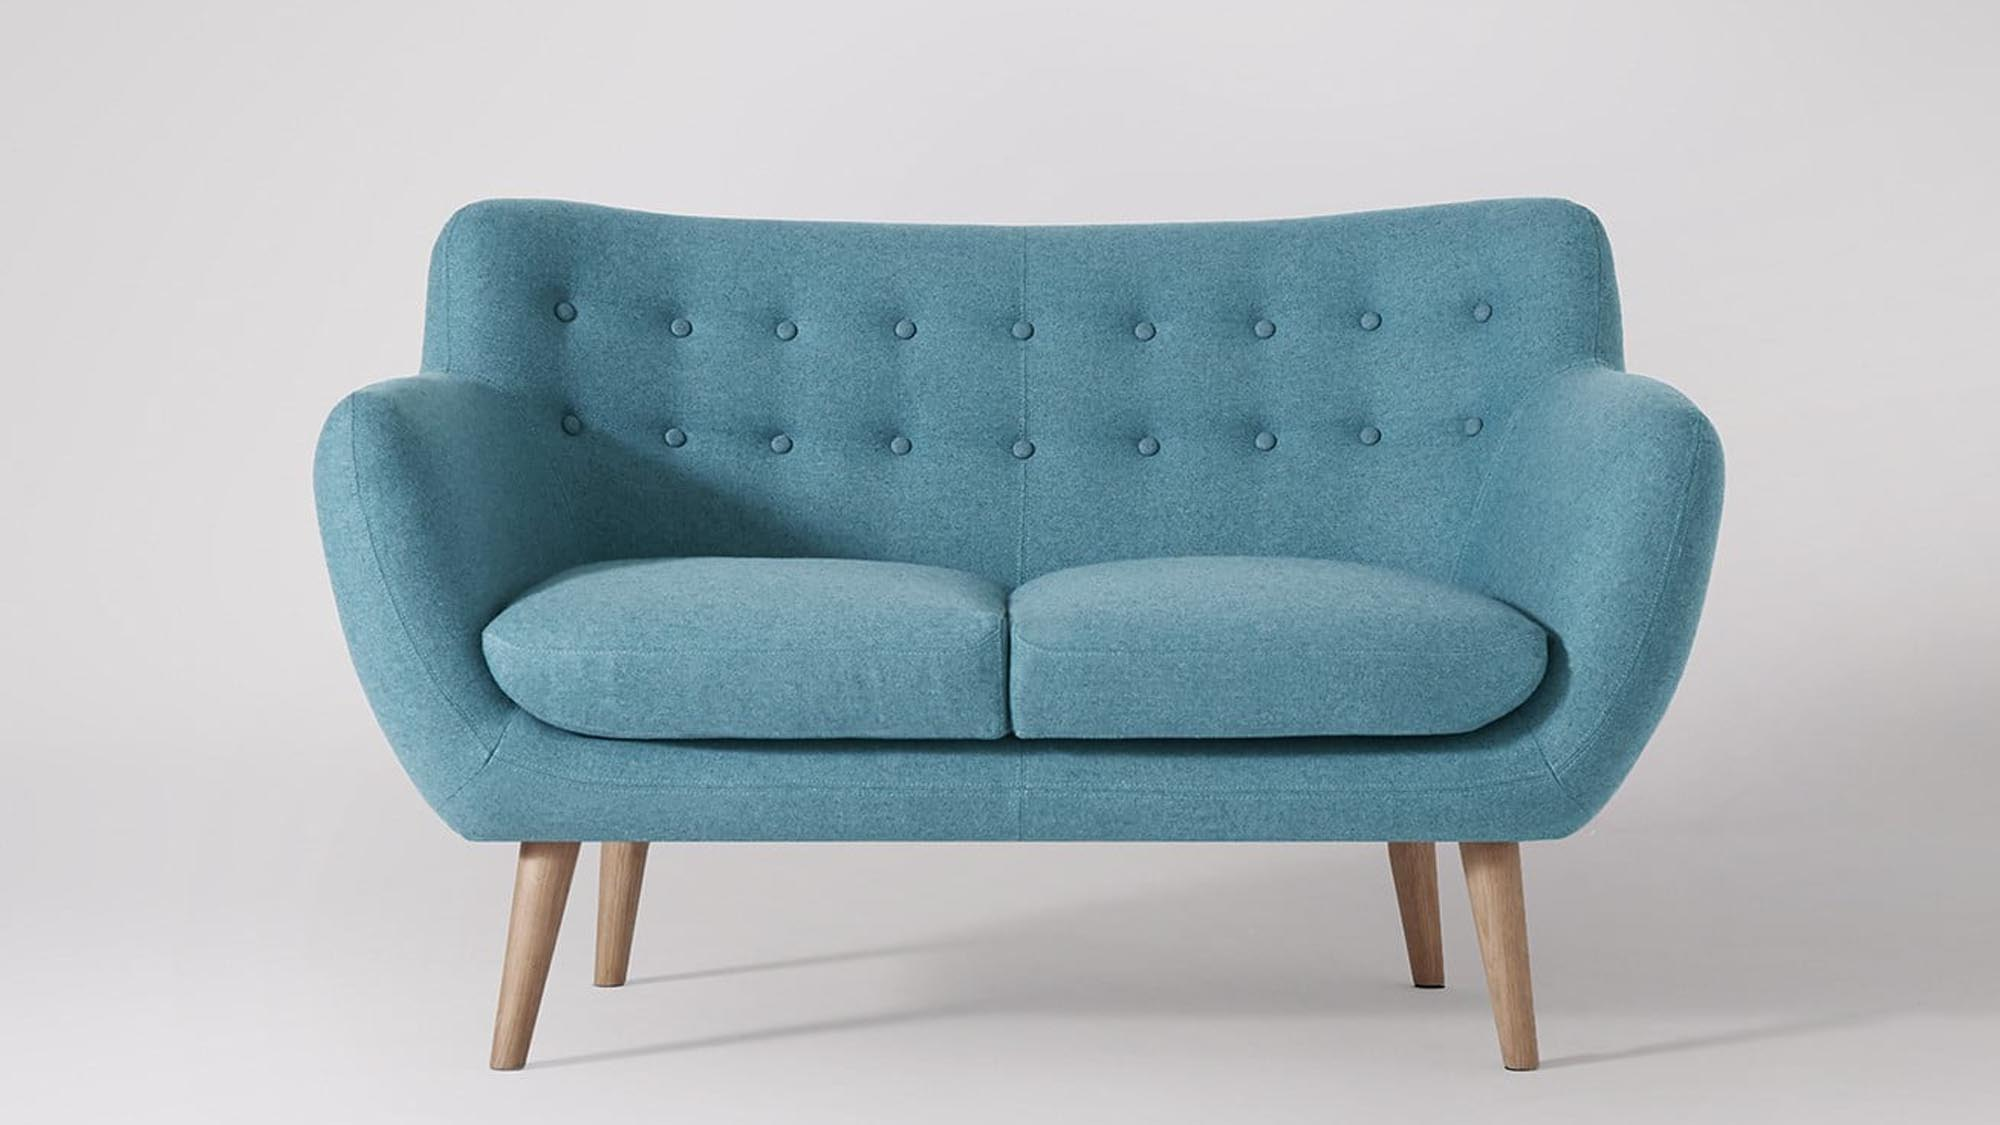 Best sofa 2017 Find the perfect sofa for your living room from